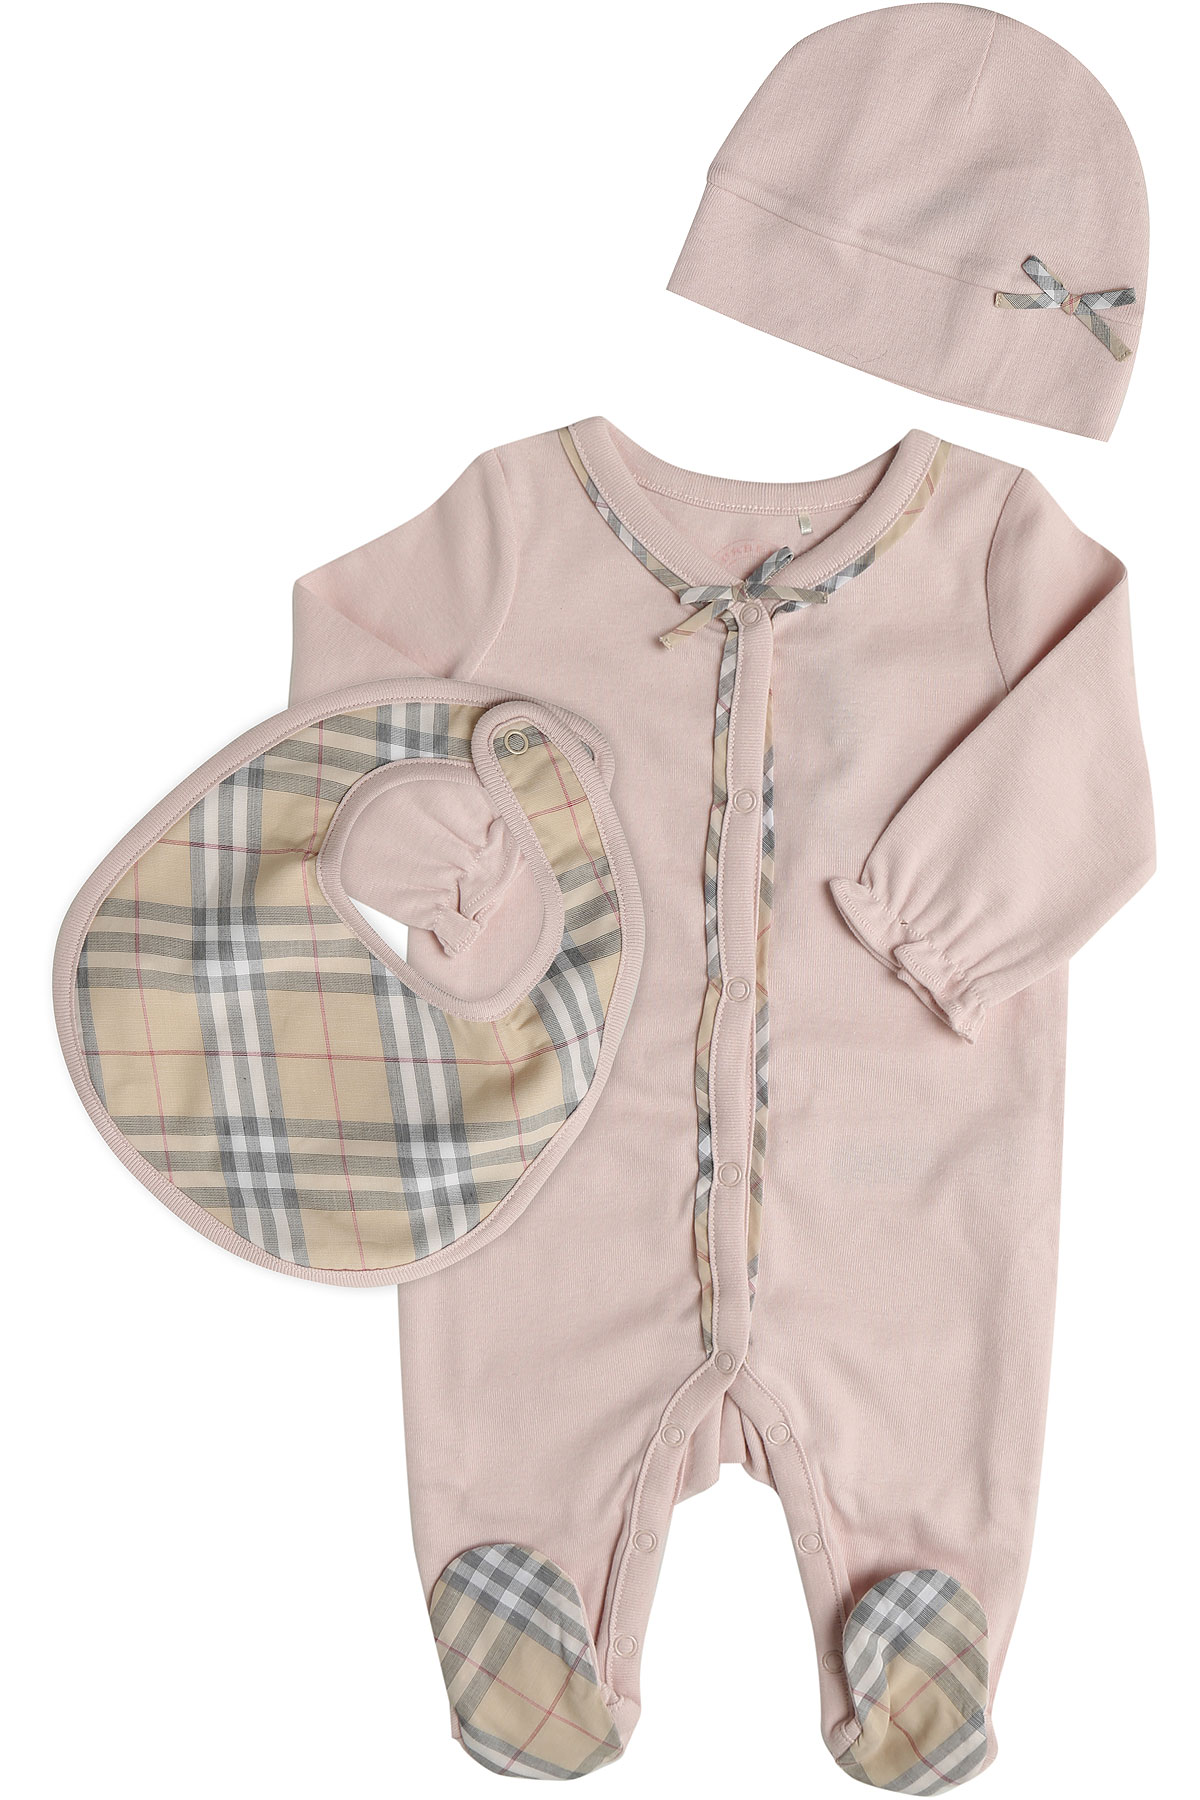 Image of Burberry Baby Bodysuits & Onesies for Girls, Pink, Cotton, 2017, 3M 6M 9M